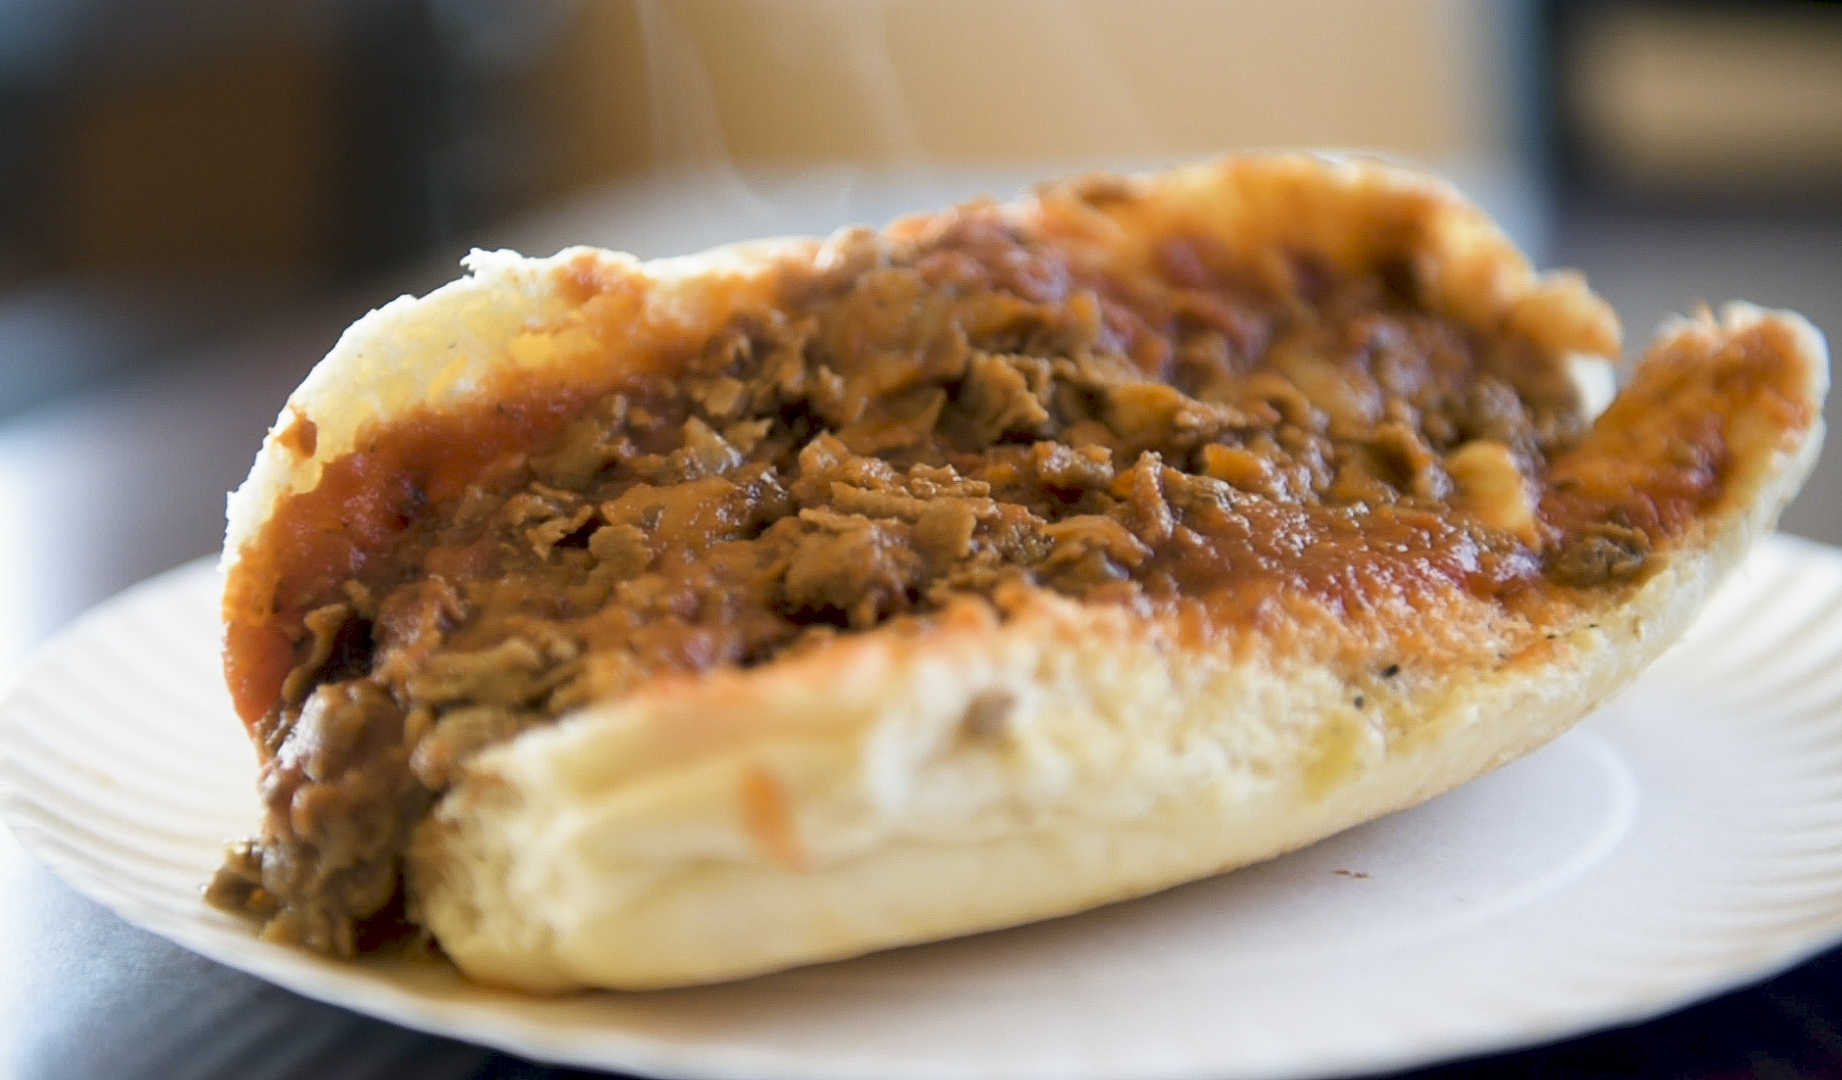 A cheese steak at V&S Sandwiches. March 12, 2019. For a story on cheesesteak day. Photo by Ben Hasty